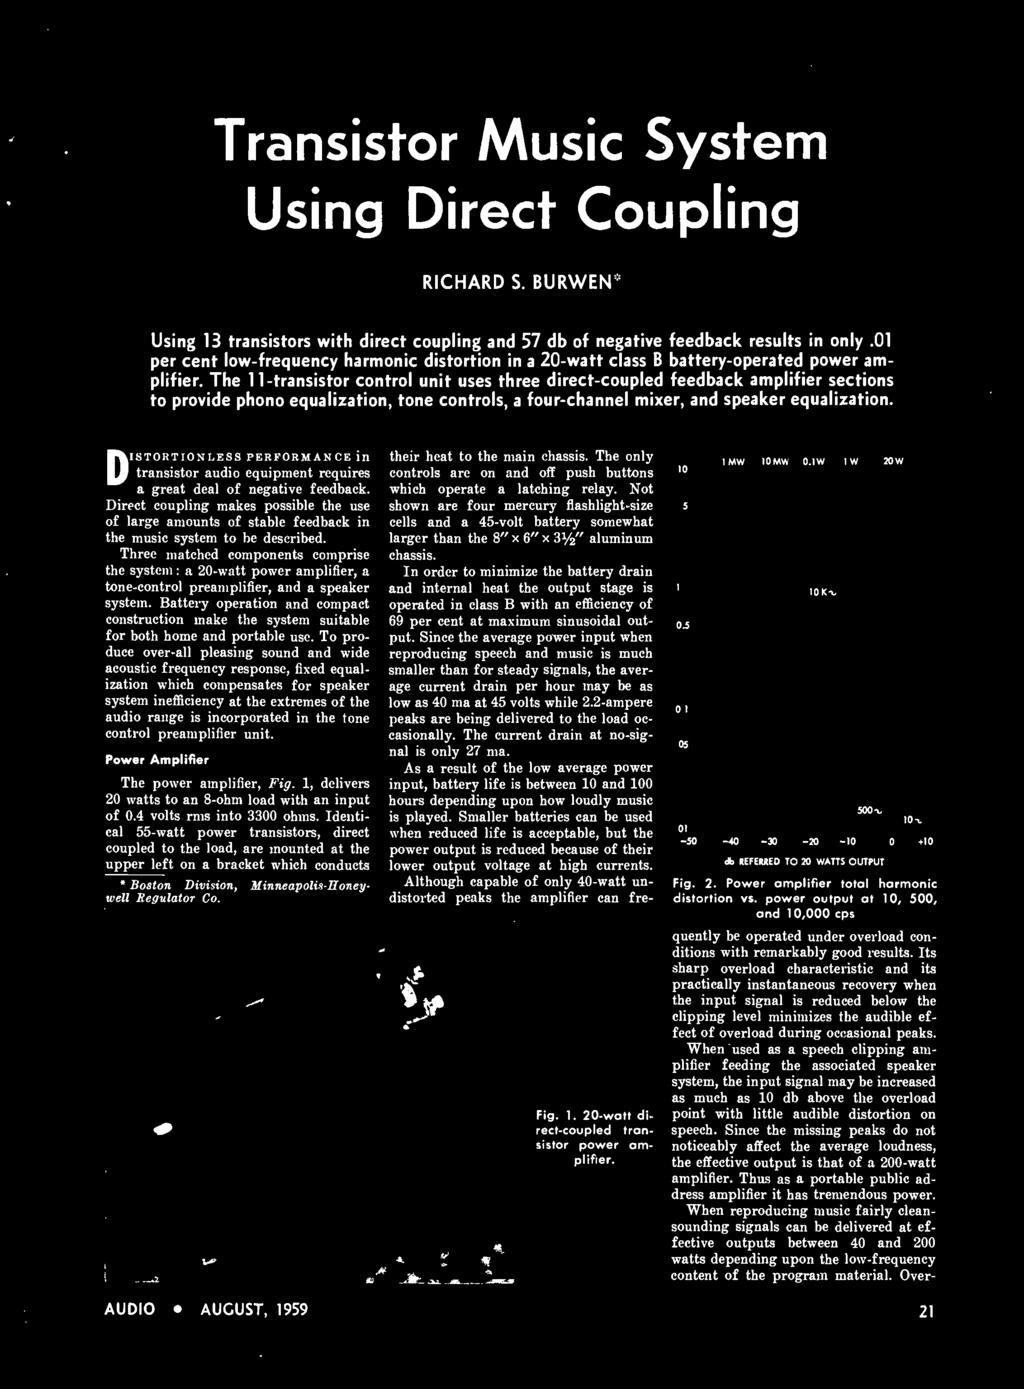 Direct coupling makes possible the use of large amounts of stable feedback in the music system to he described.